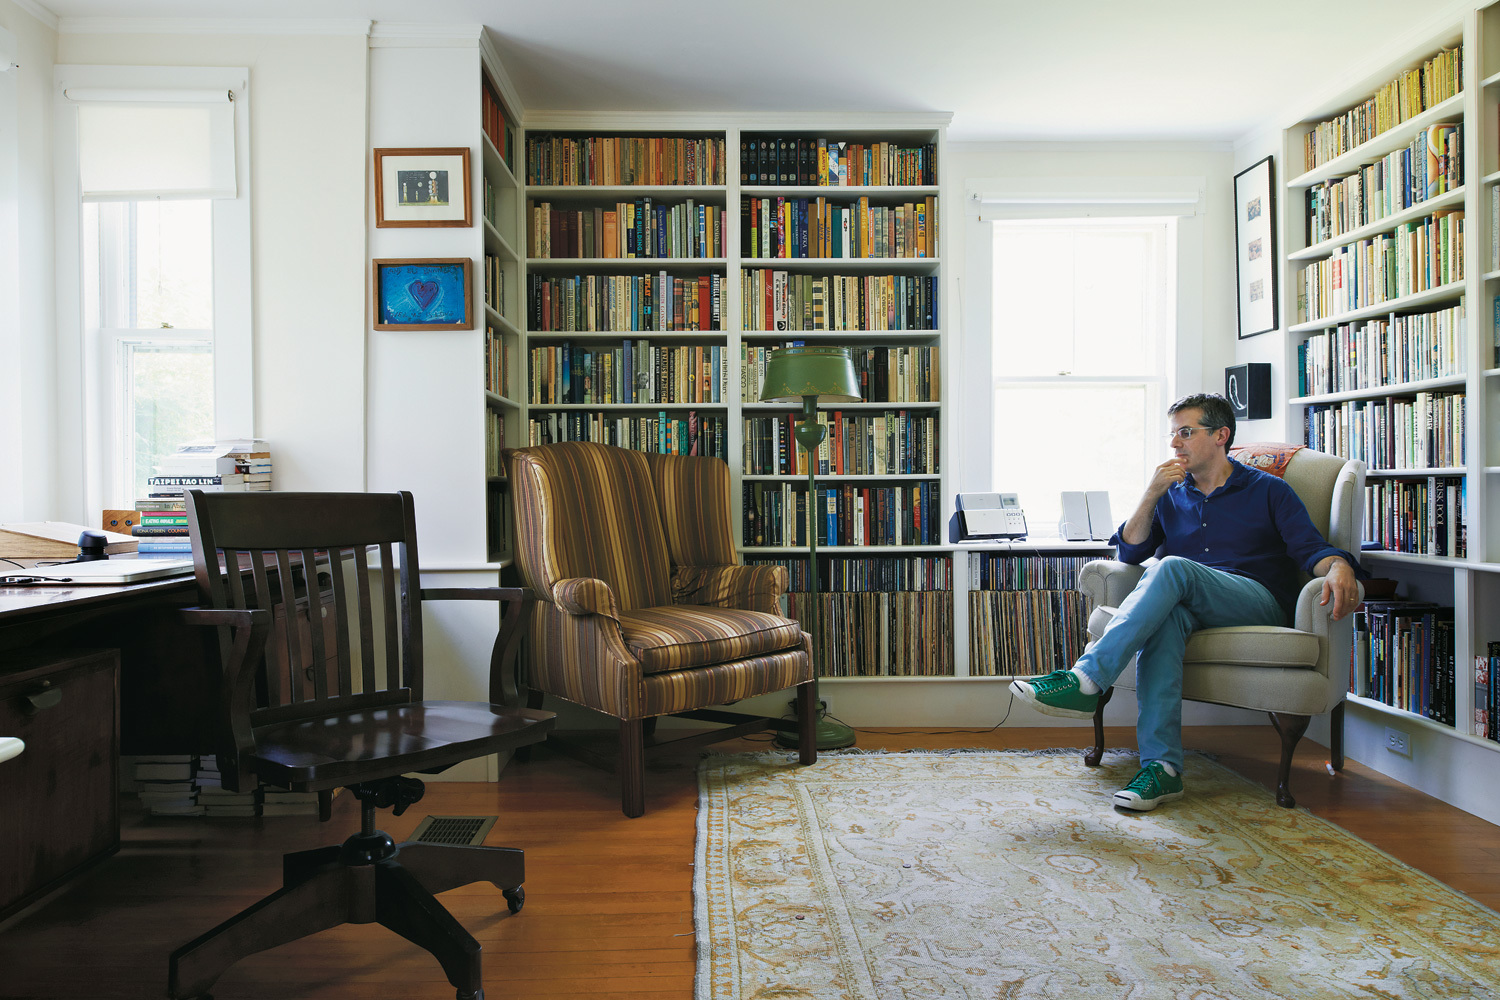 Jonathan Lethem. All photos by John Spinks for T Magazine.